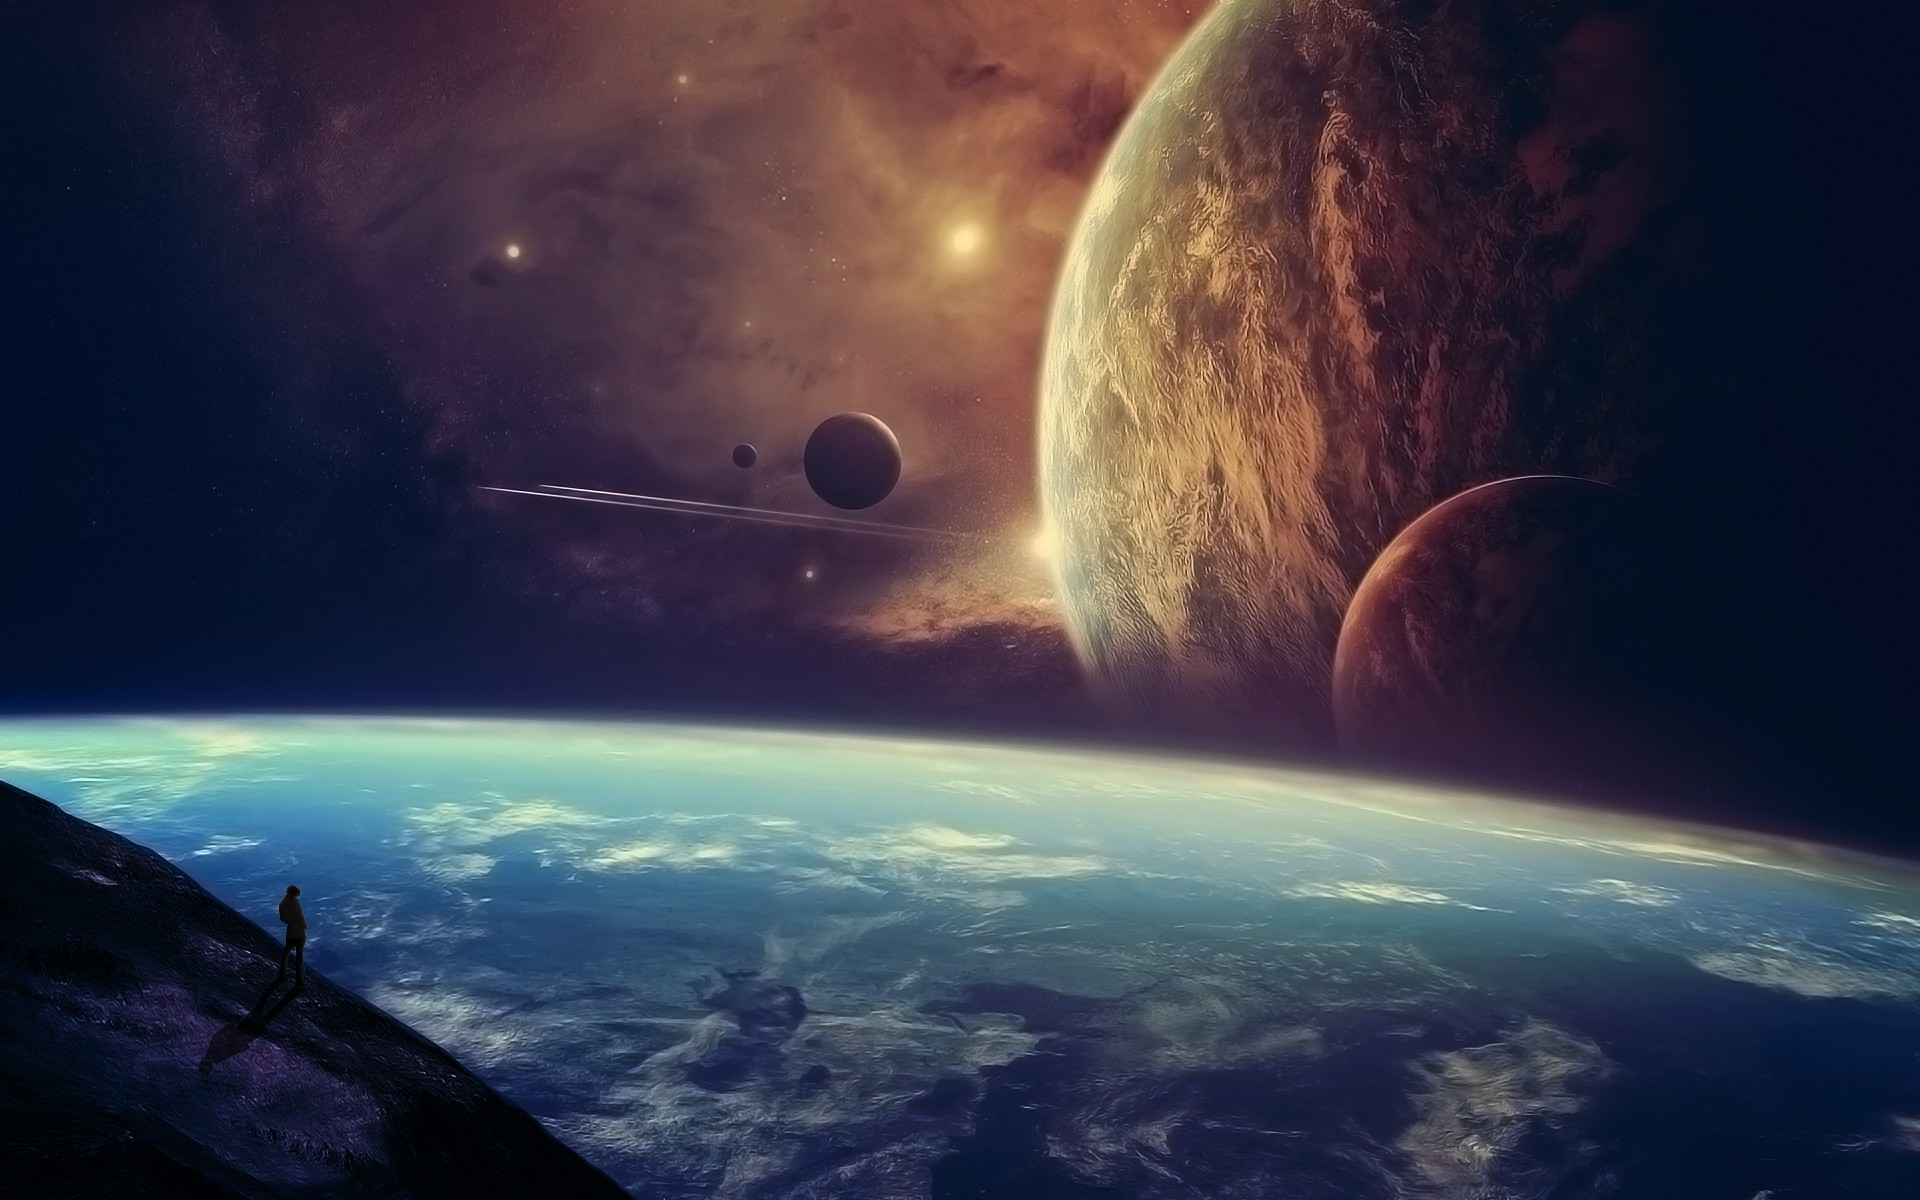 Fantasy Space Wallpapers (71+ images)